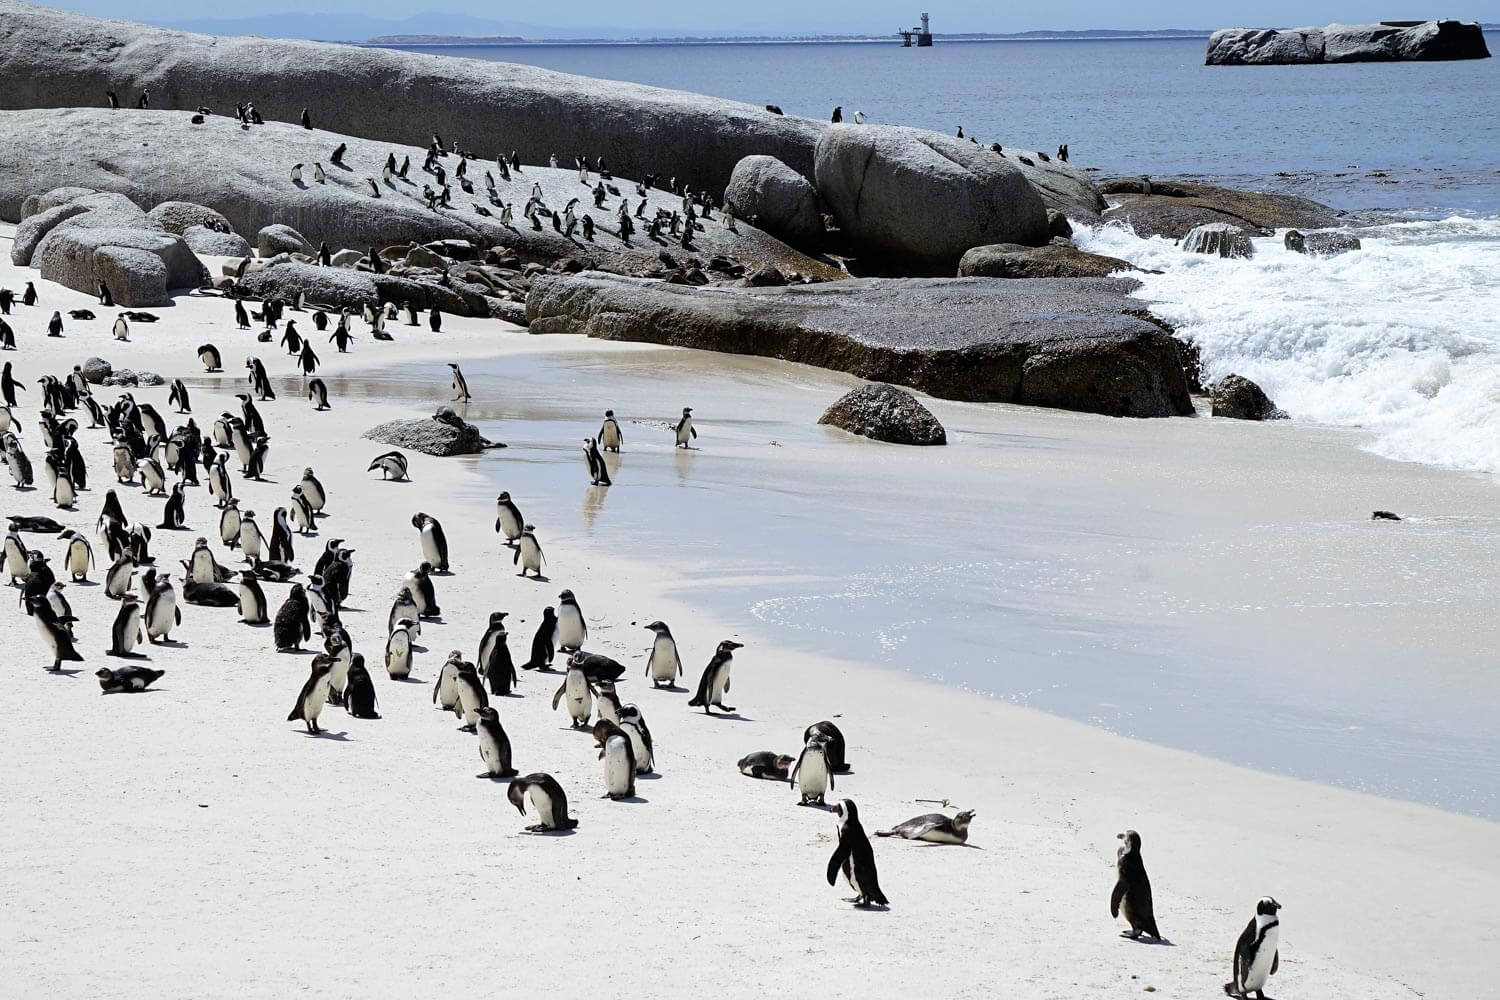 Colonia di pinguini - Boulders Beach, Table Mountain National Park